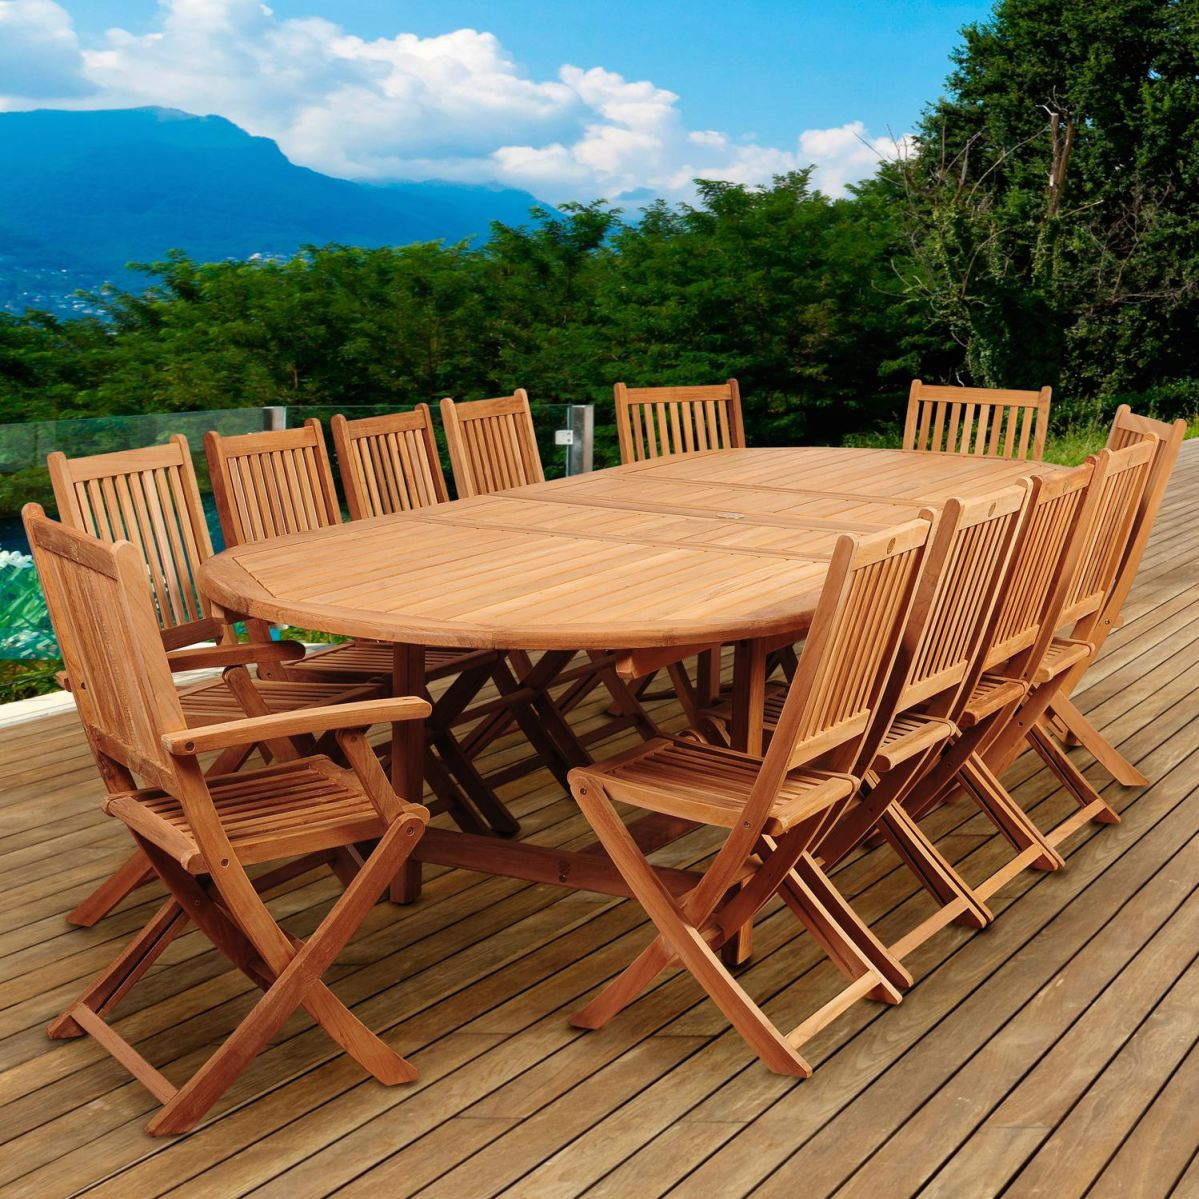 Highland Park 13 Piece Teak Patio Dining Set With Folding Chairs And 87 X  47 Inch Oval Extension Tableia with regard to Beautiful Teak Outdoor Furniture Set